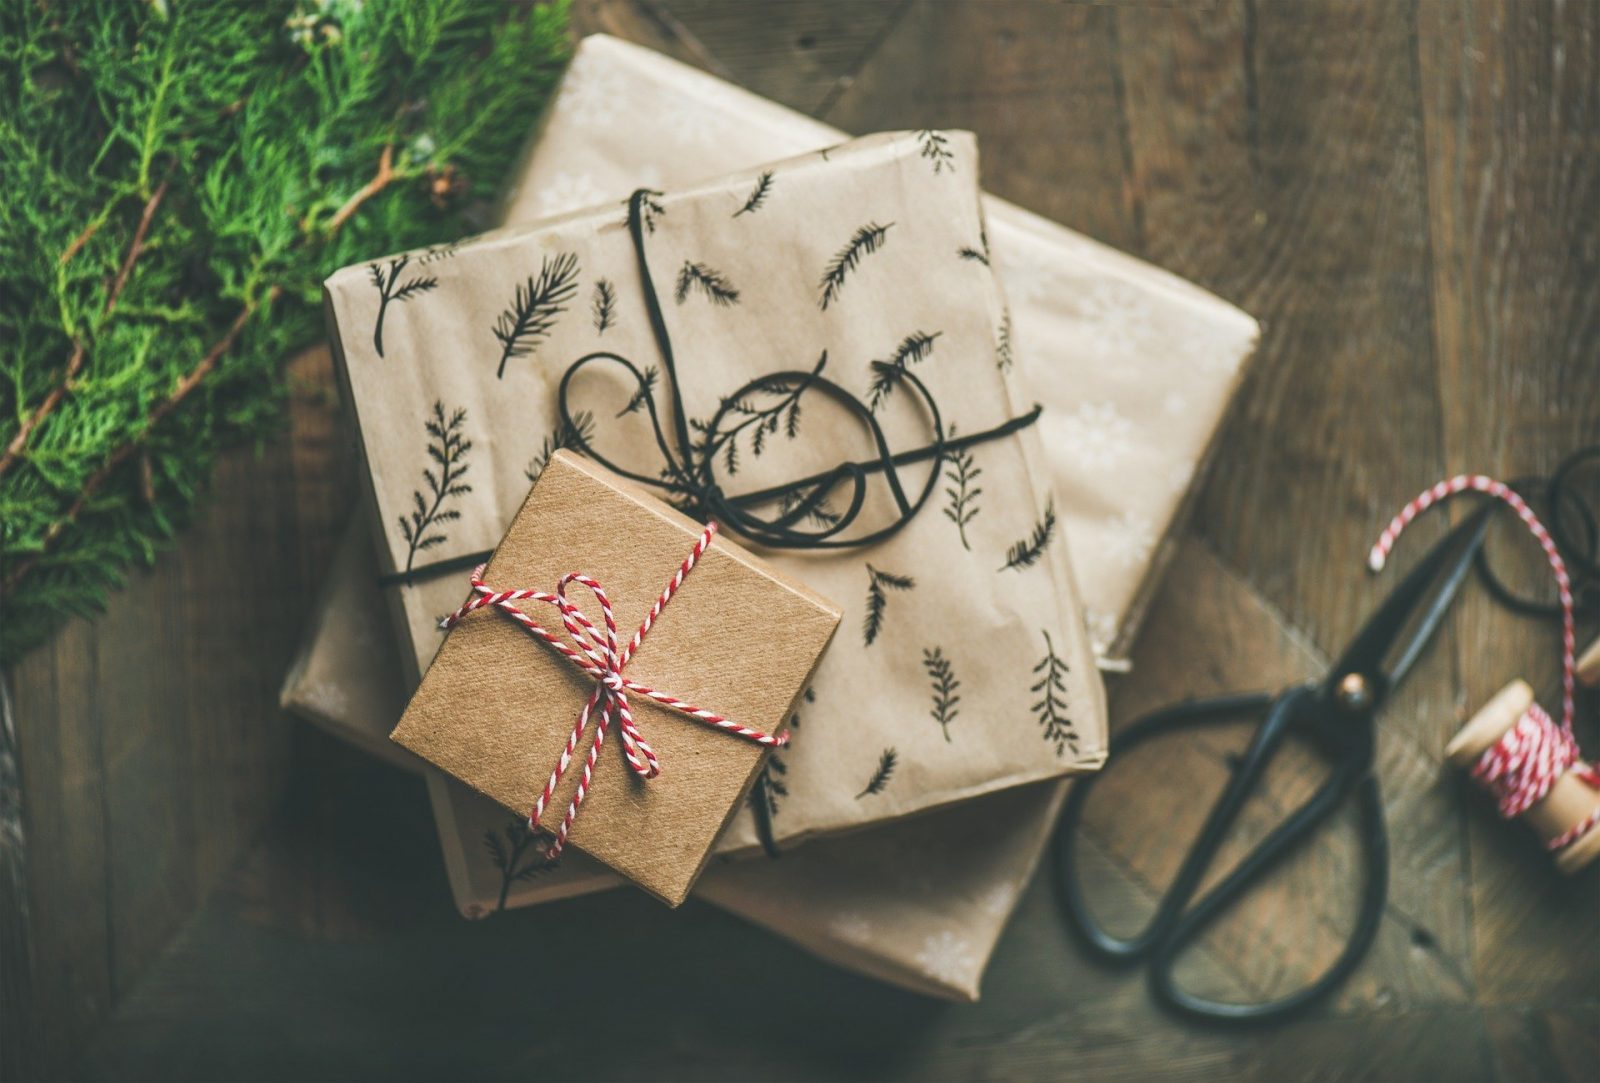 Fabulous Gift Inspiration for the Traveler in Your Life